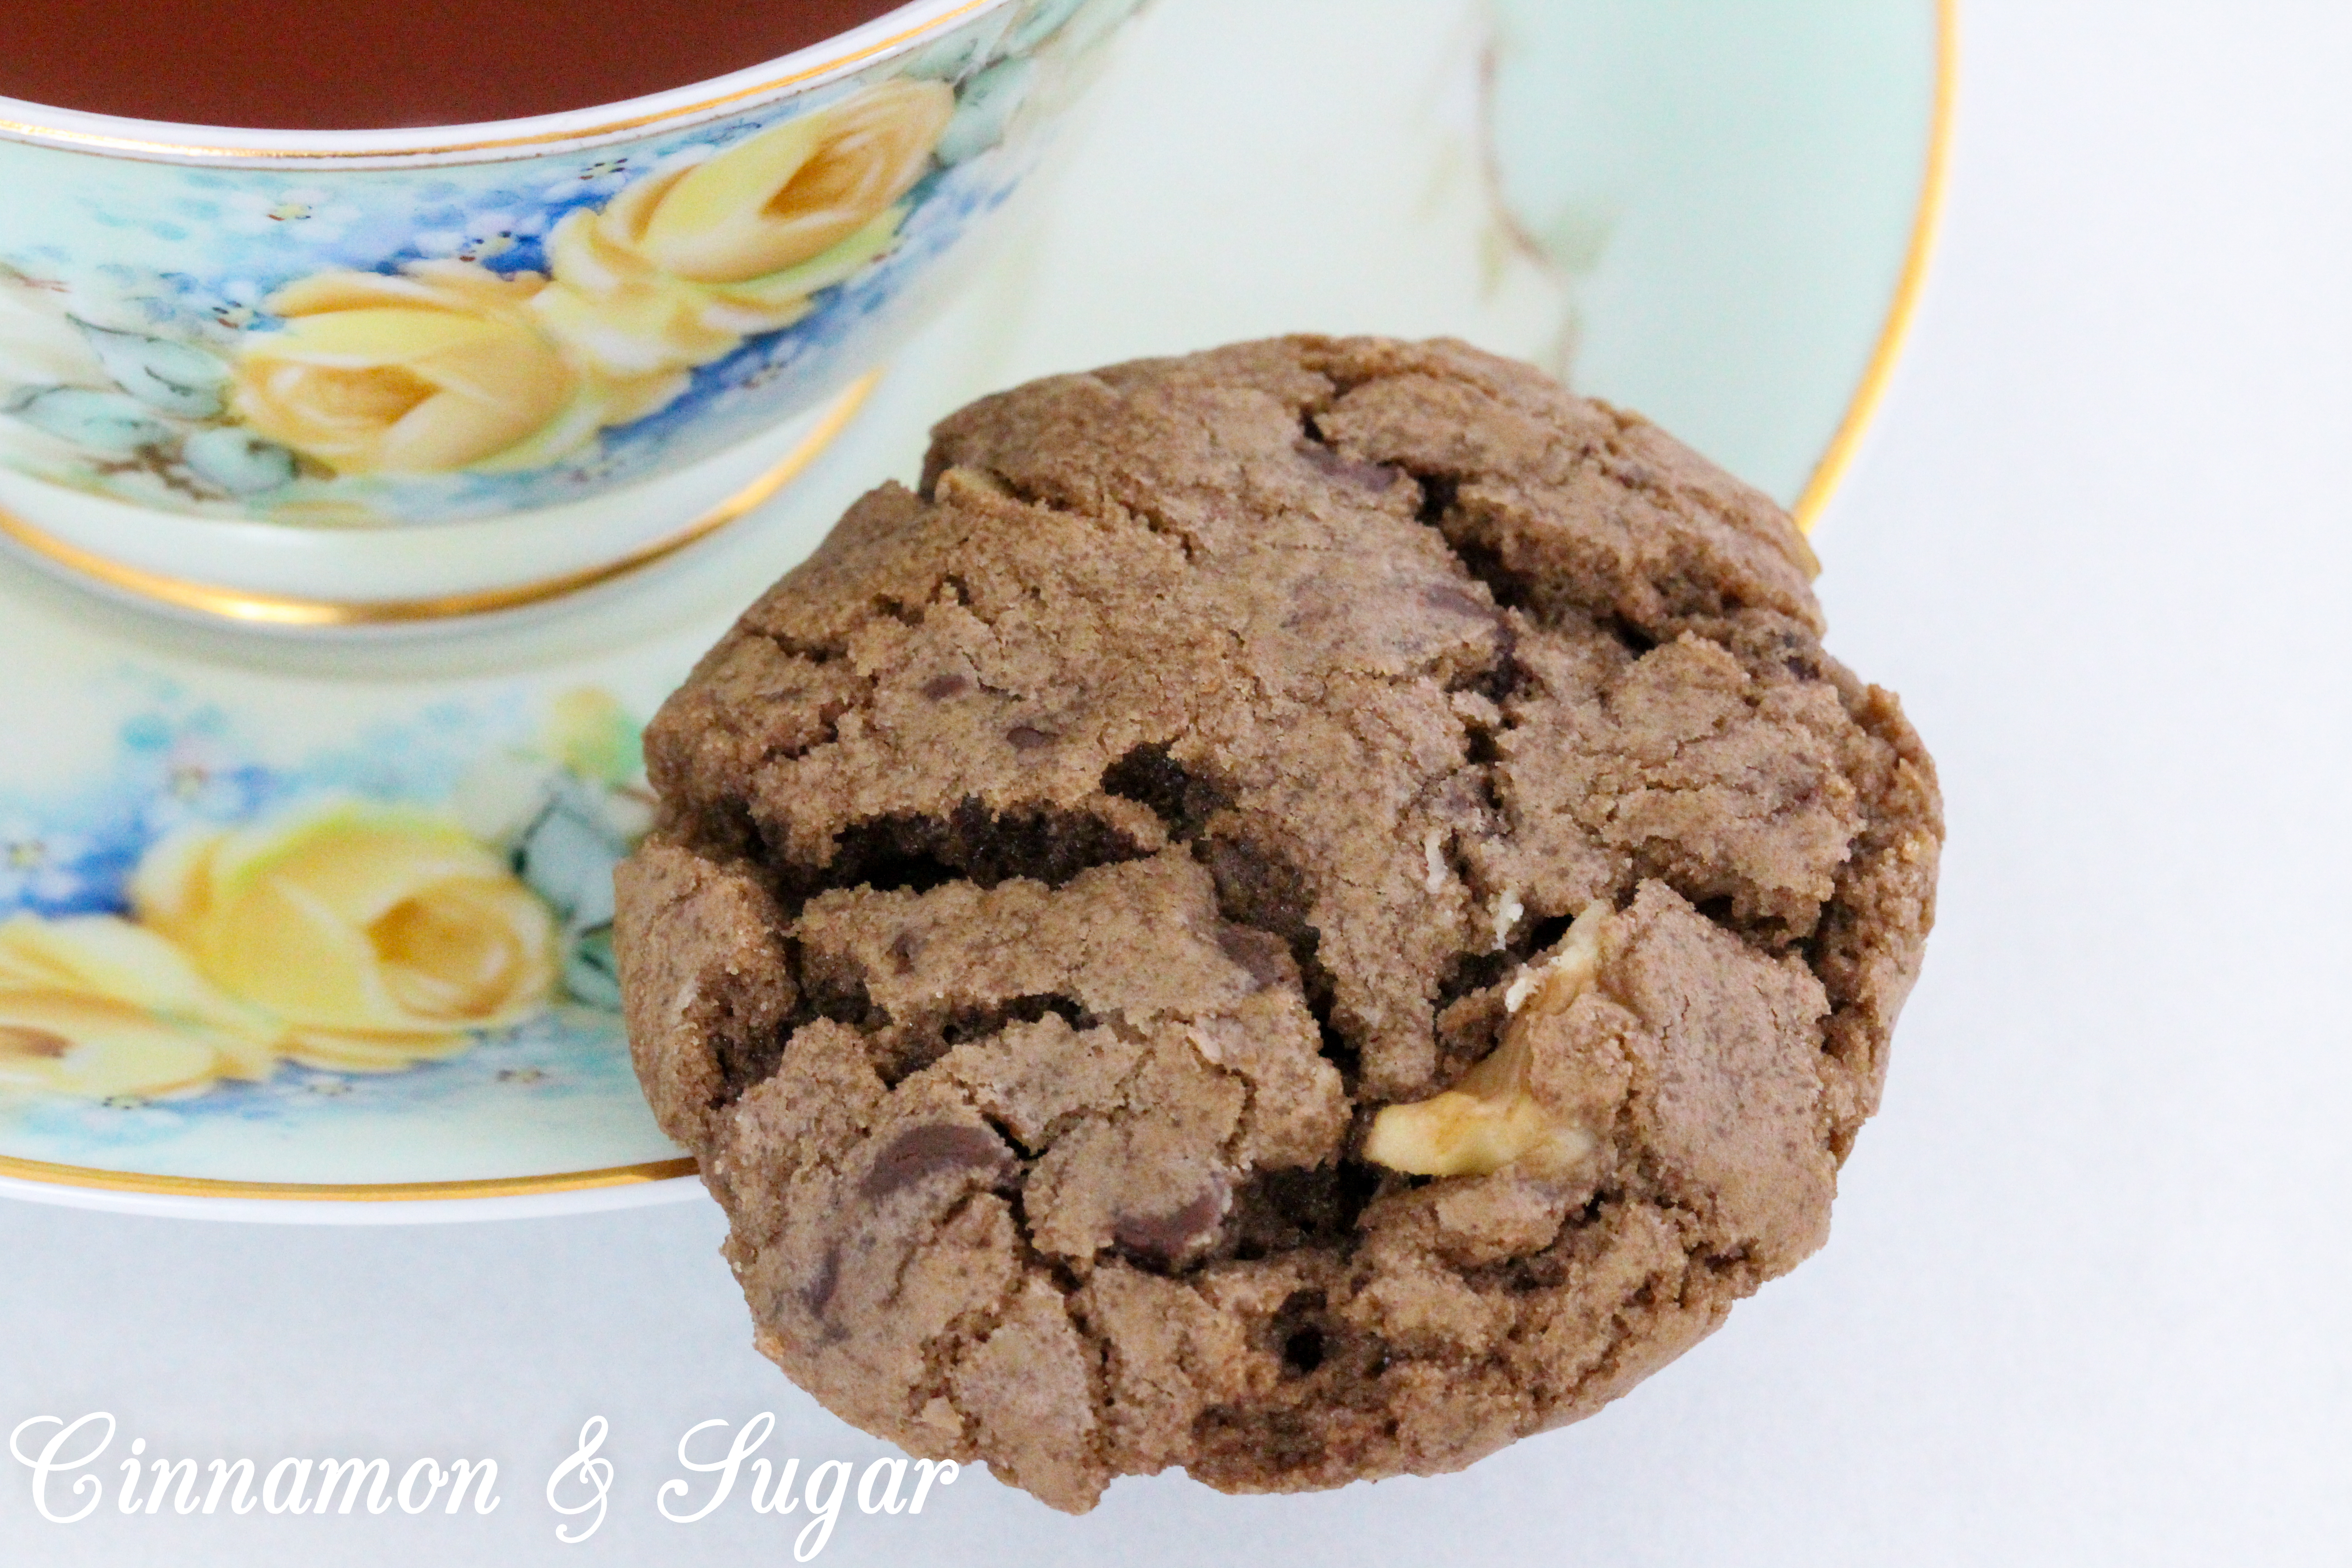 Chocolate Walnut Cookies are the perfect combination of chewy and crunchy, thanks to the melted chocolate, chocolate chips, and walnuts. Recipe shared with permission granted by Debra Sennefelder, author of Three Widows and a Corpse.